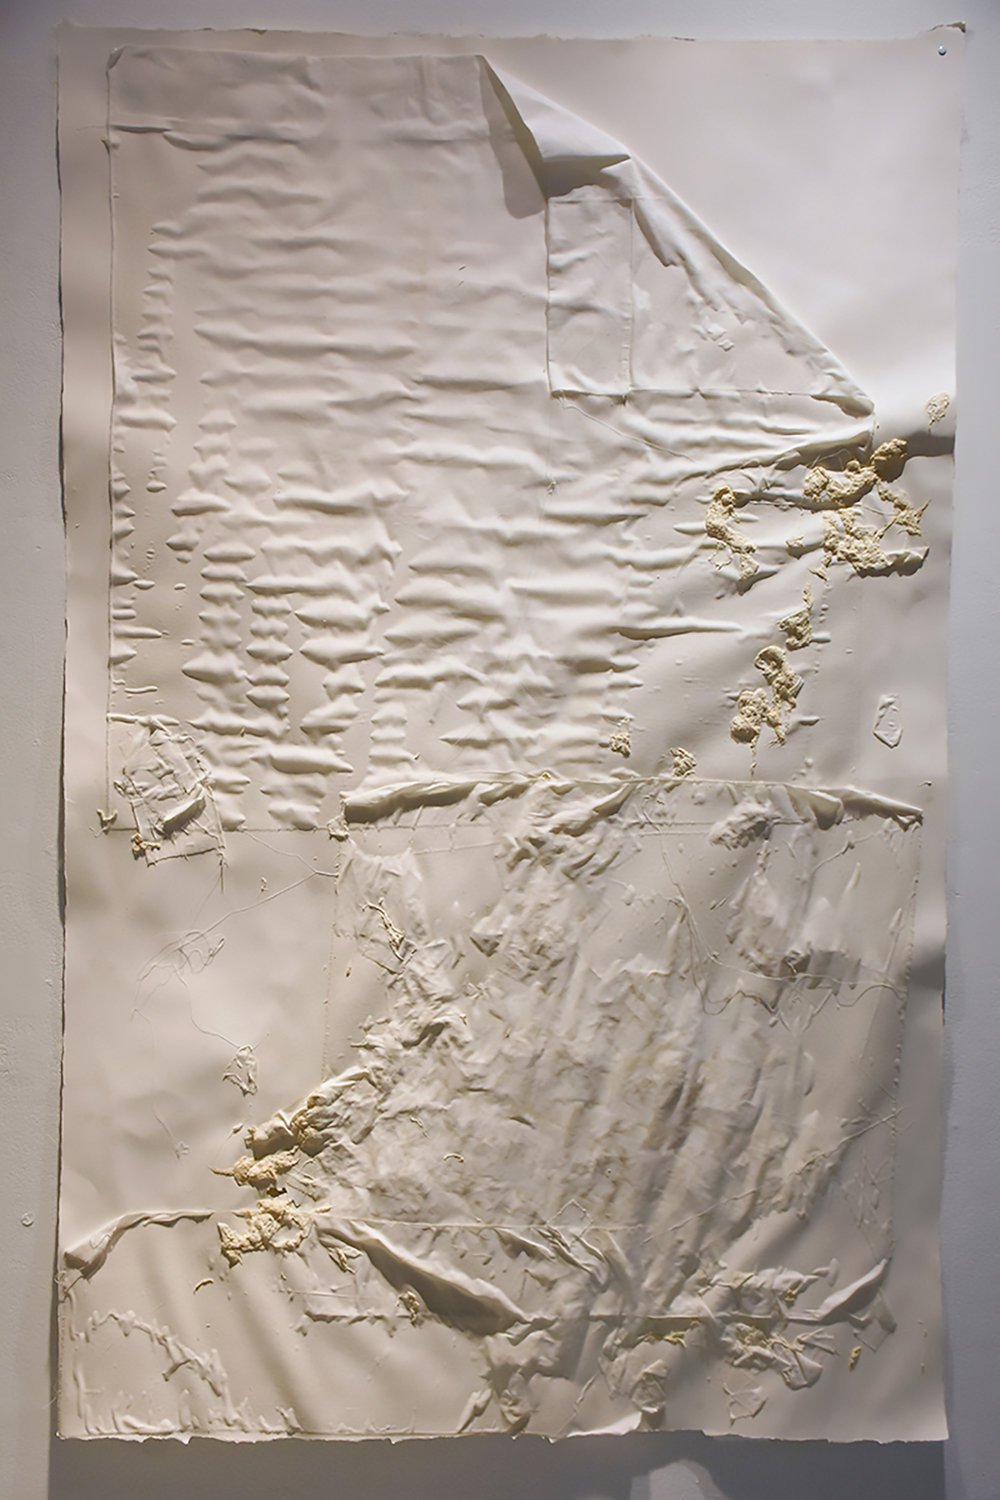 Generational Whiteness , 2017, Instillation of white linen and starch. -1 of 4 works grappling with representational images of whiteness by Philadelphia born artist, Kristina Davis.